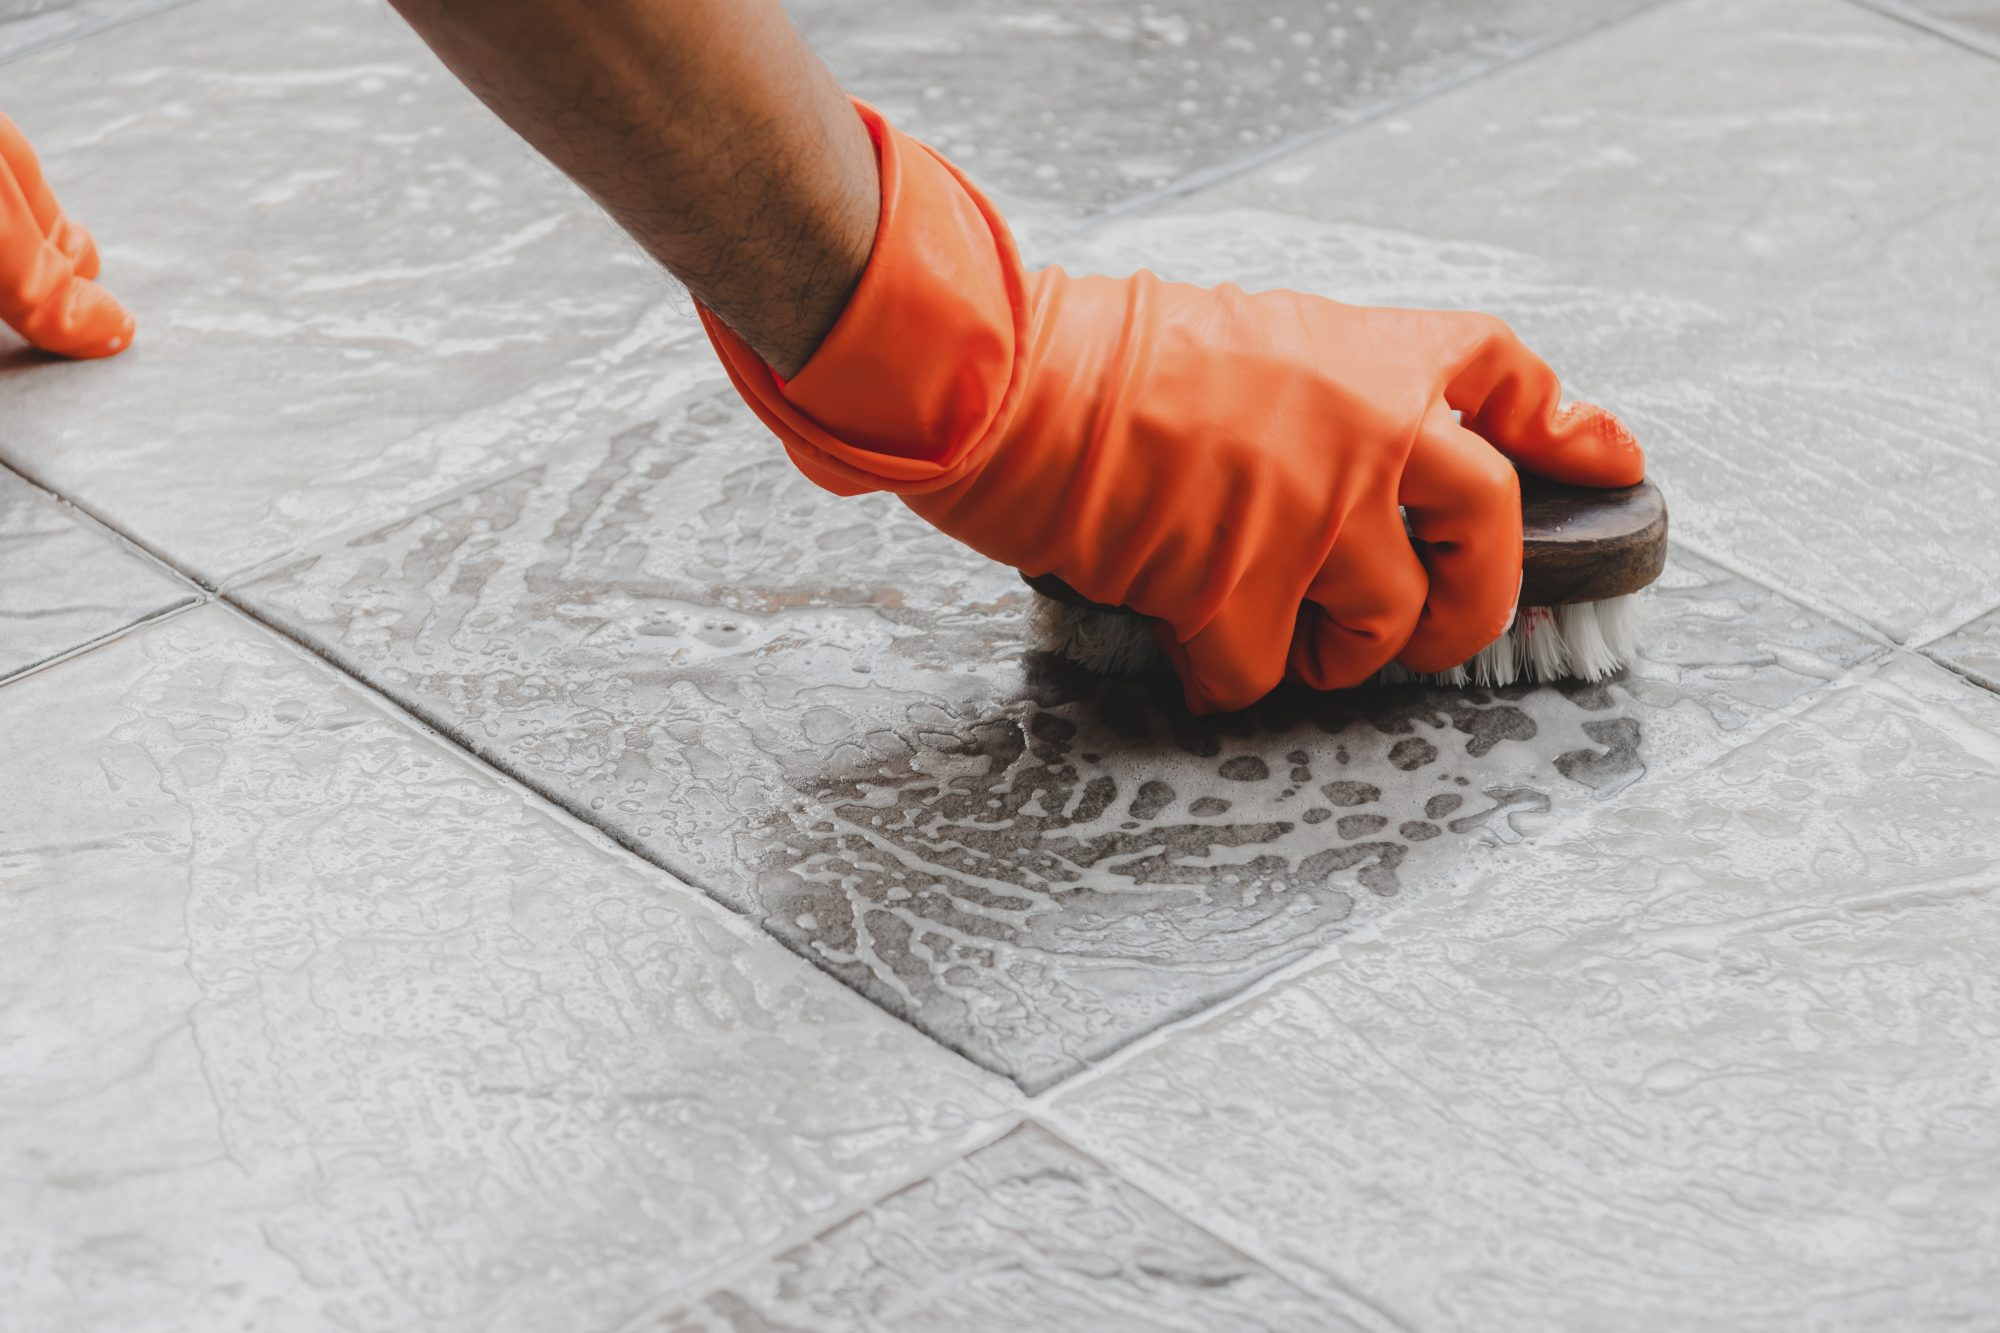 woman scrubbing floor with brush